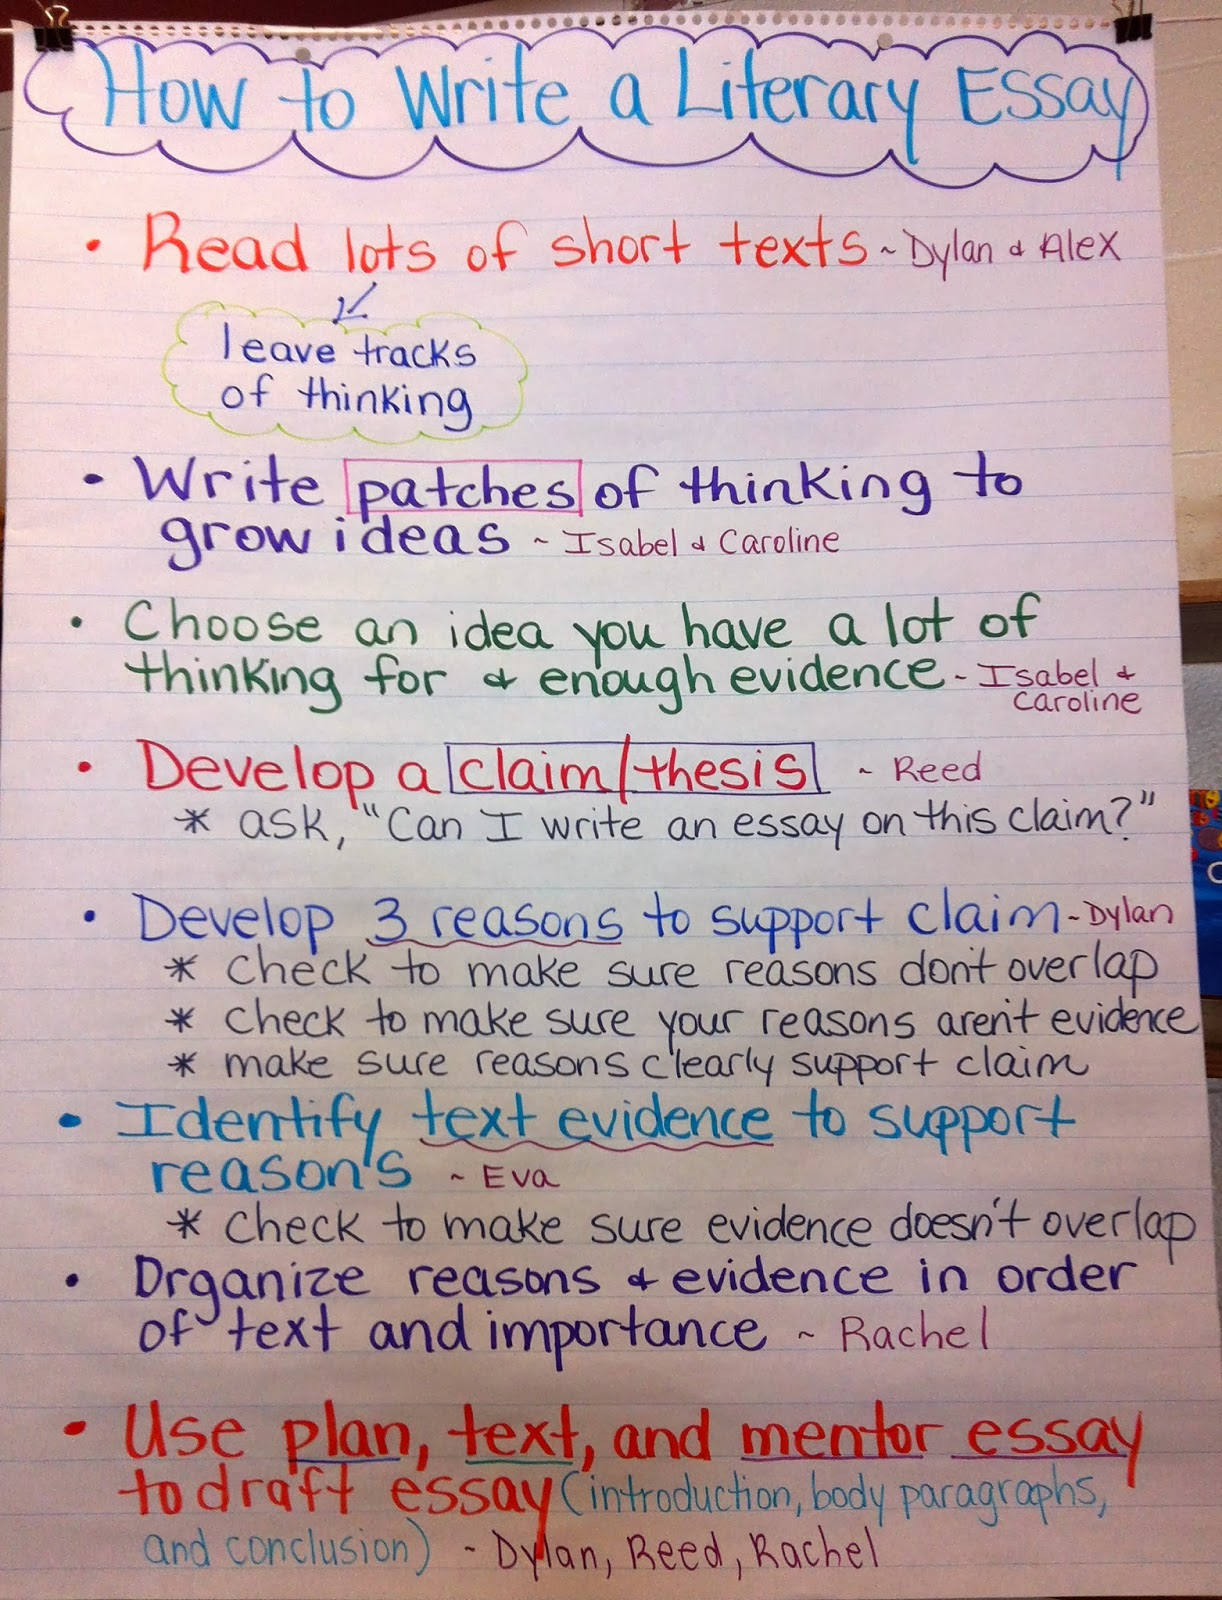 writing a literary essay writing a literary essay tk essays examples - Example Of Literary Essay